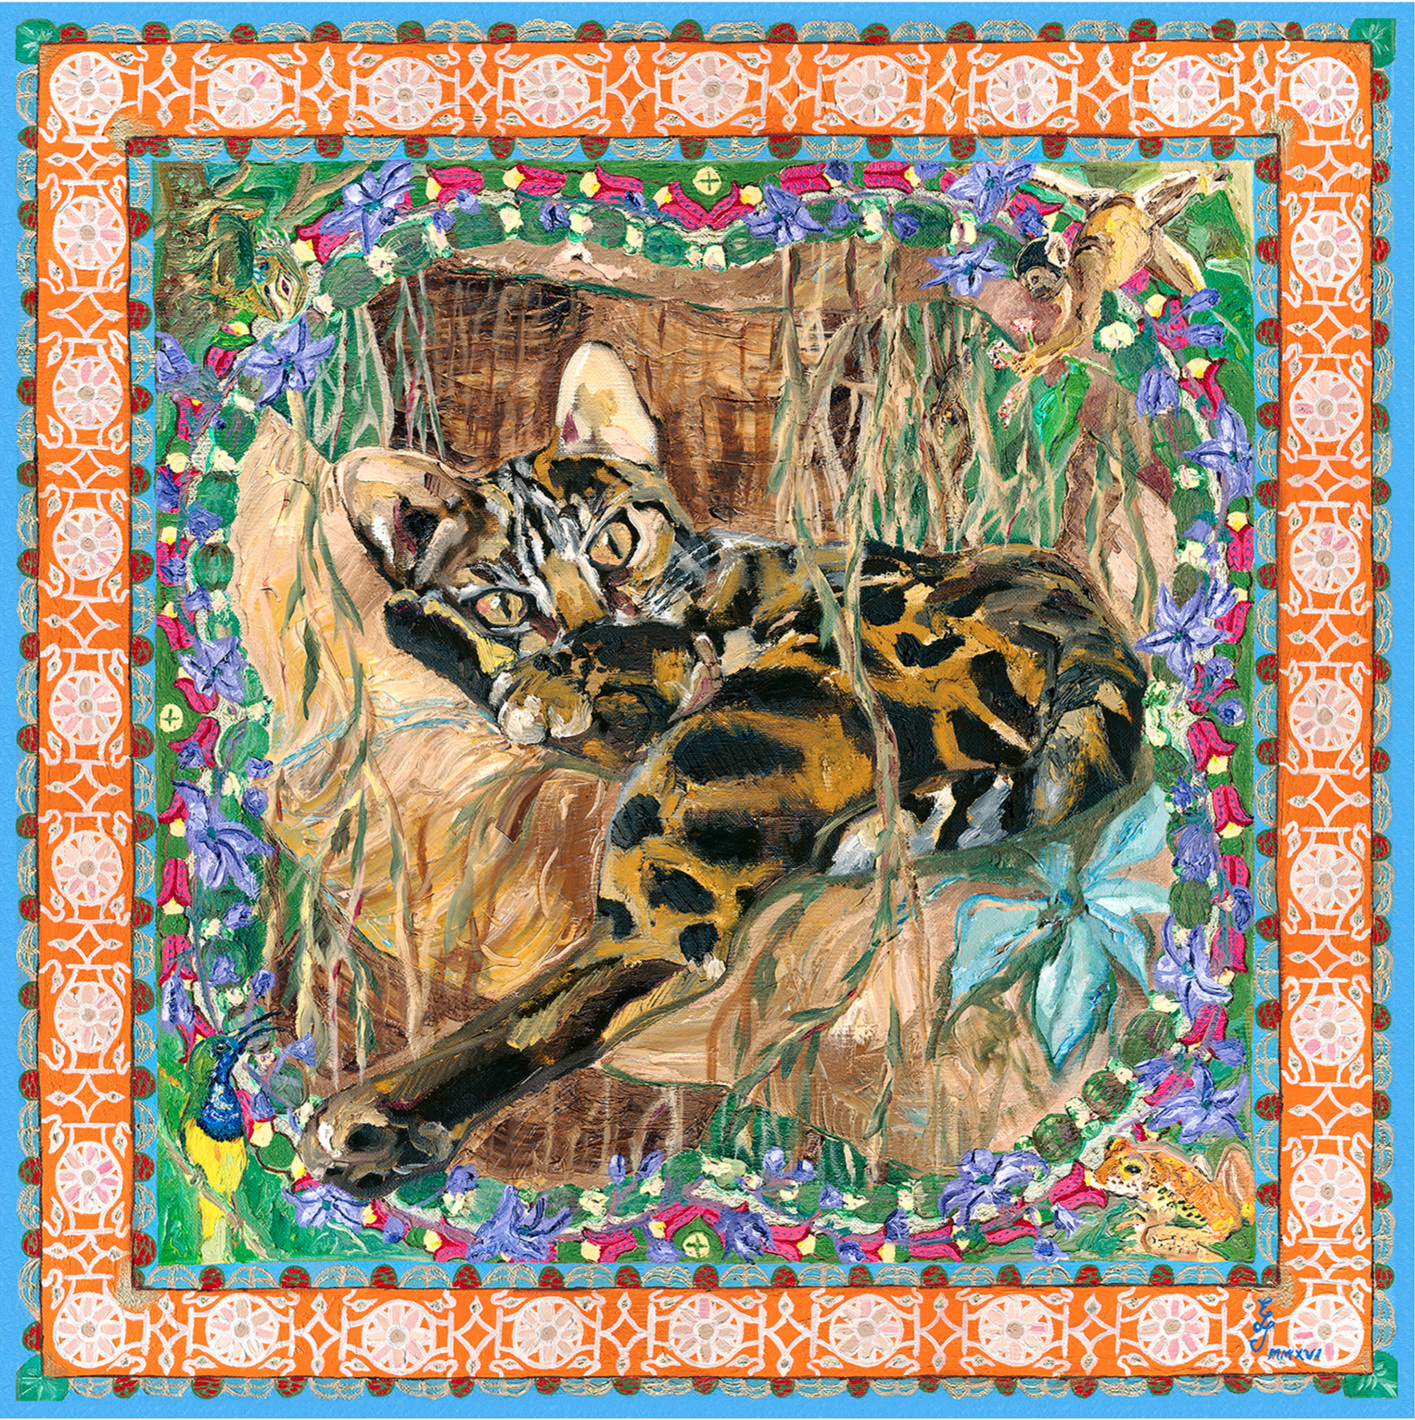 Felis Bengalensis Maximus MMXVI, 60x60cm, oil on canvas, 2016.